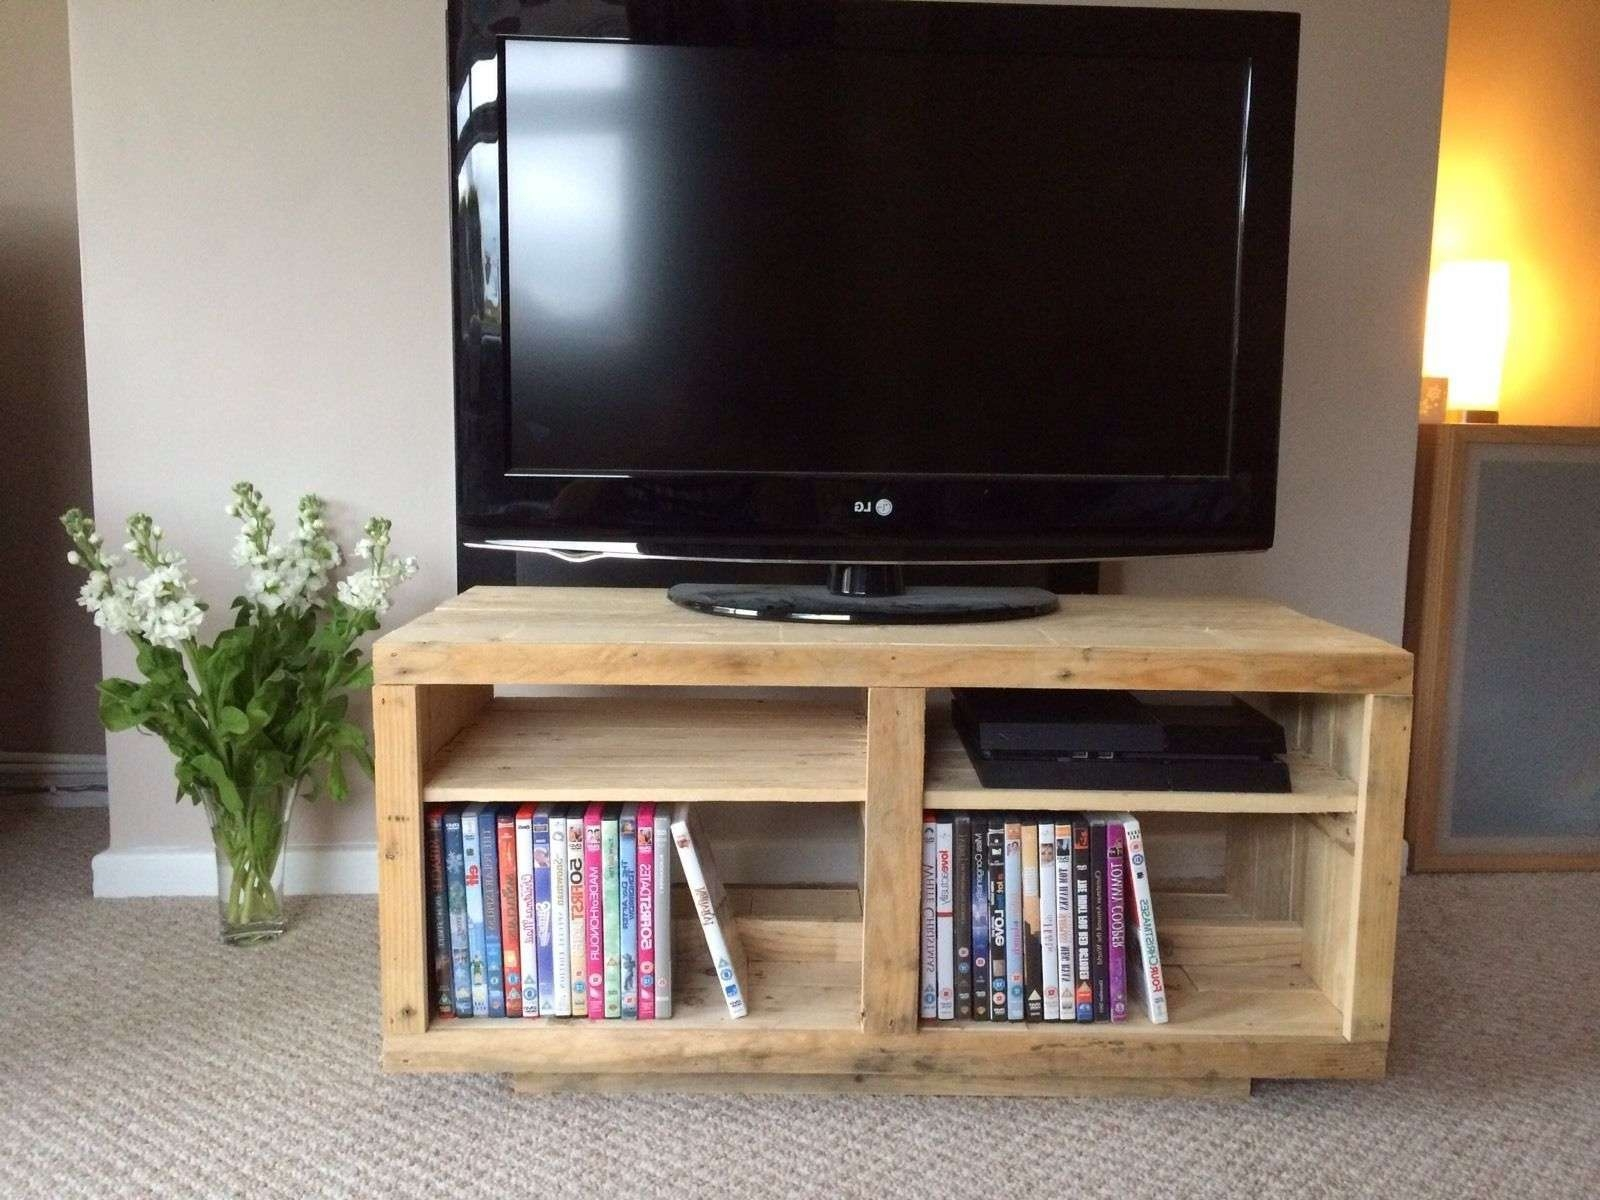 How To Build A Tv Stand Out Of Wood | Ebay For Upright Tv Stands (View 4 of 20)